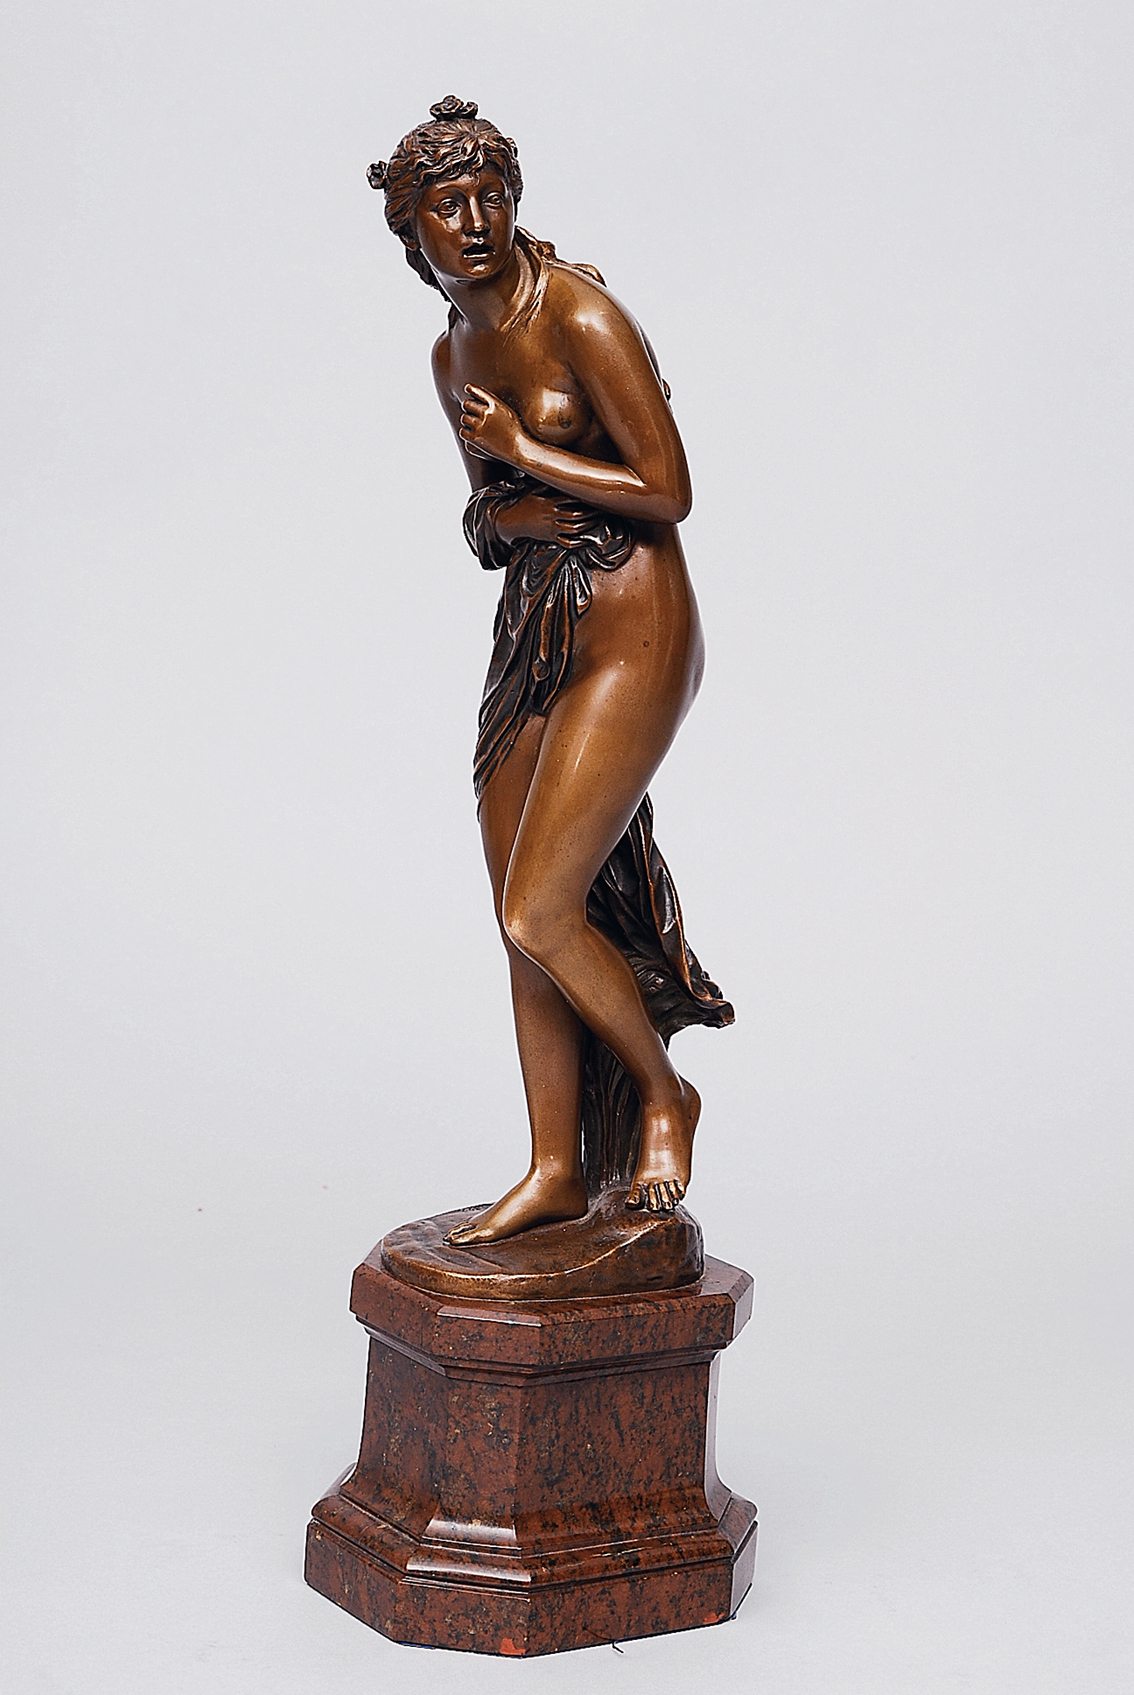 A bronze figure 'A nymphe caught by surprise during bathing'